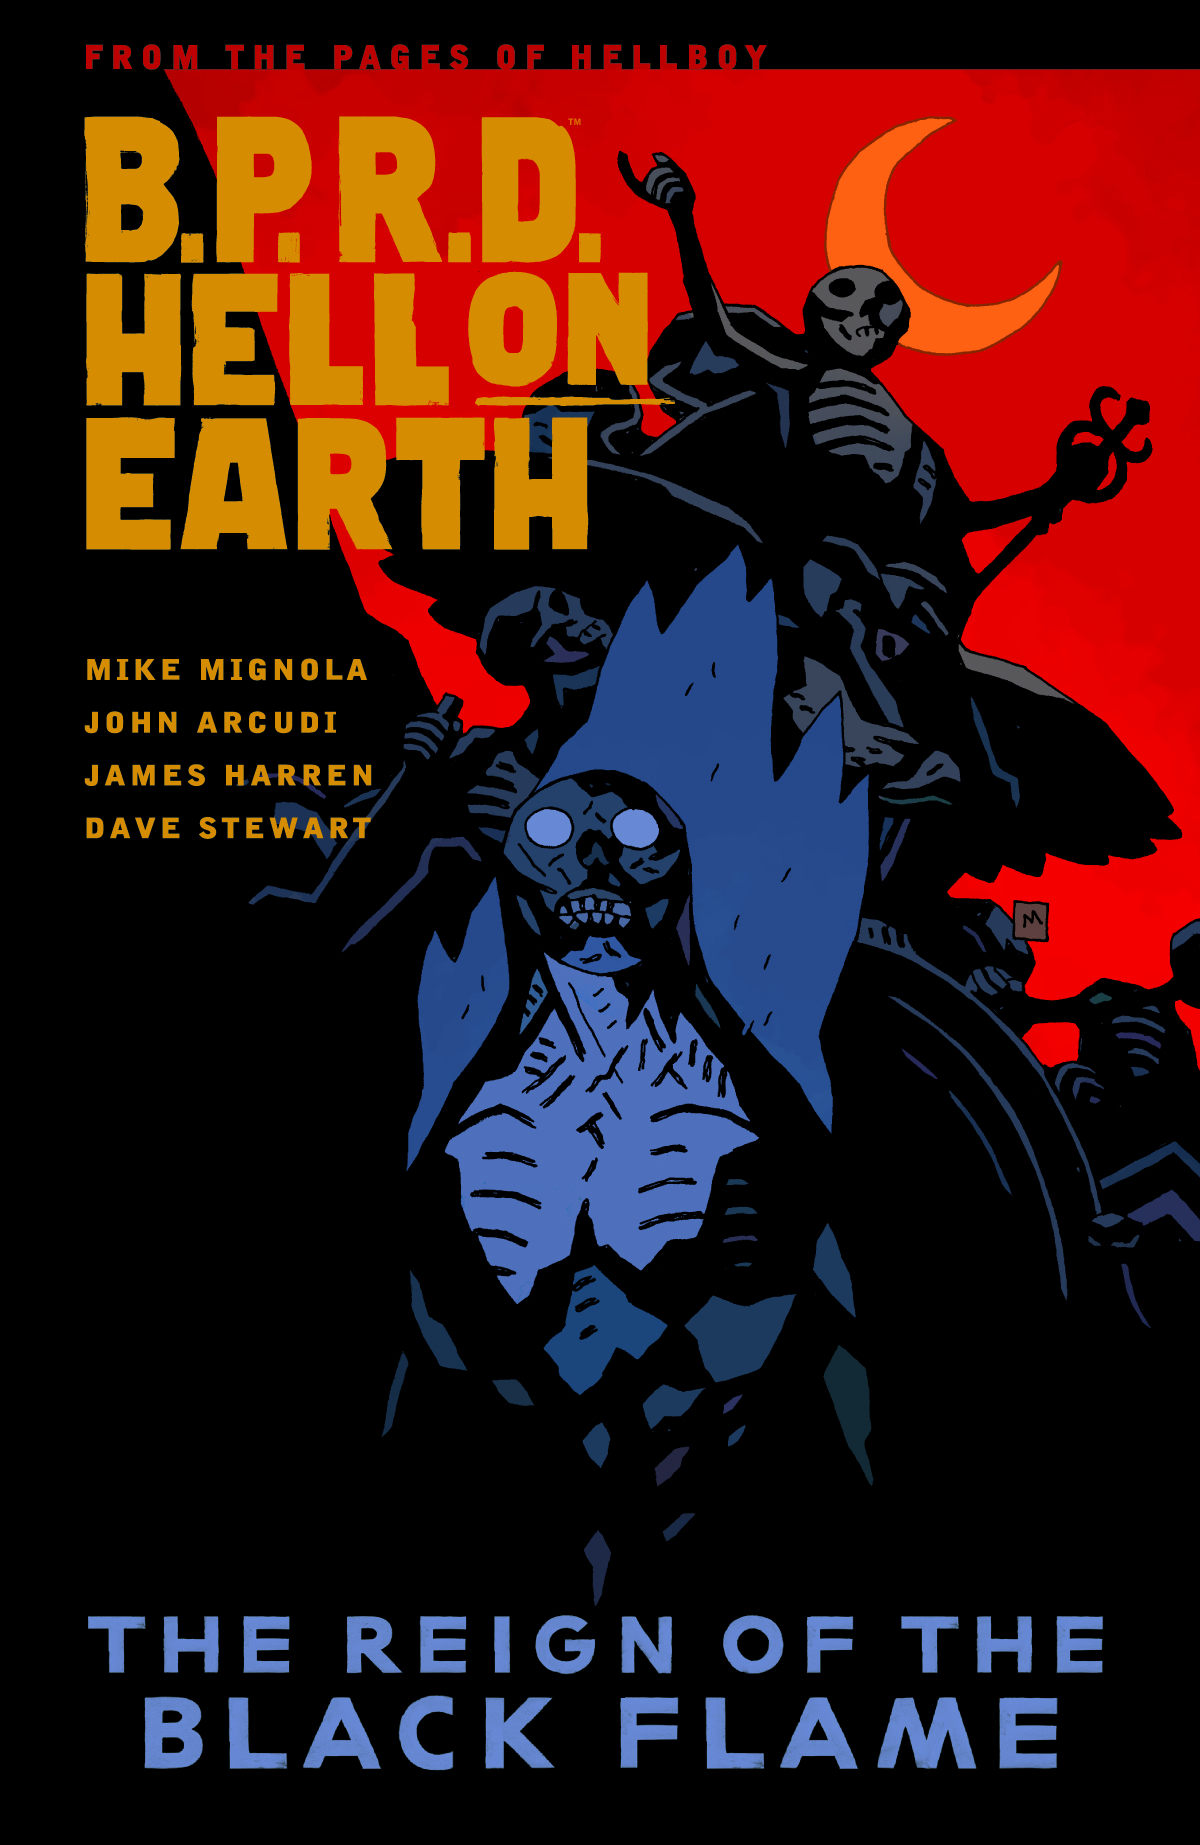 BPRD HELL ON EARTH TP VOL 09 REIGN OF BLACK FLAME (MAY140026